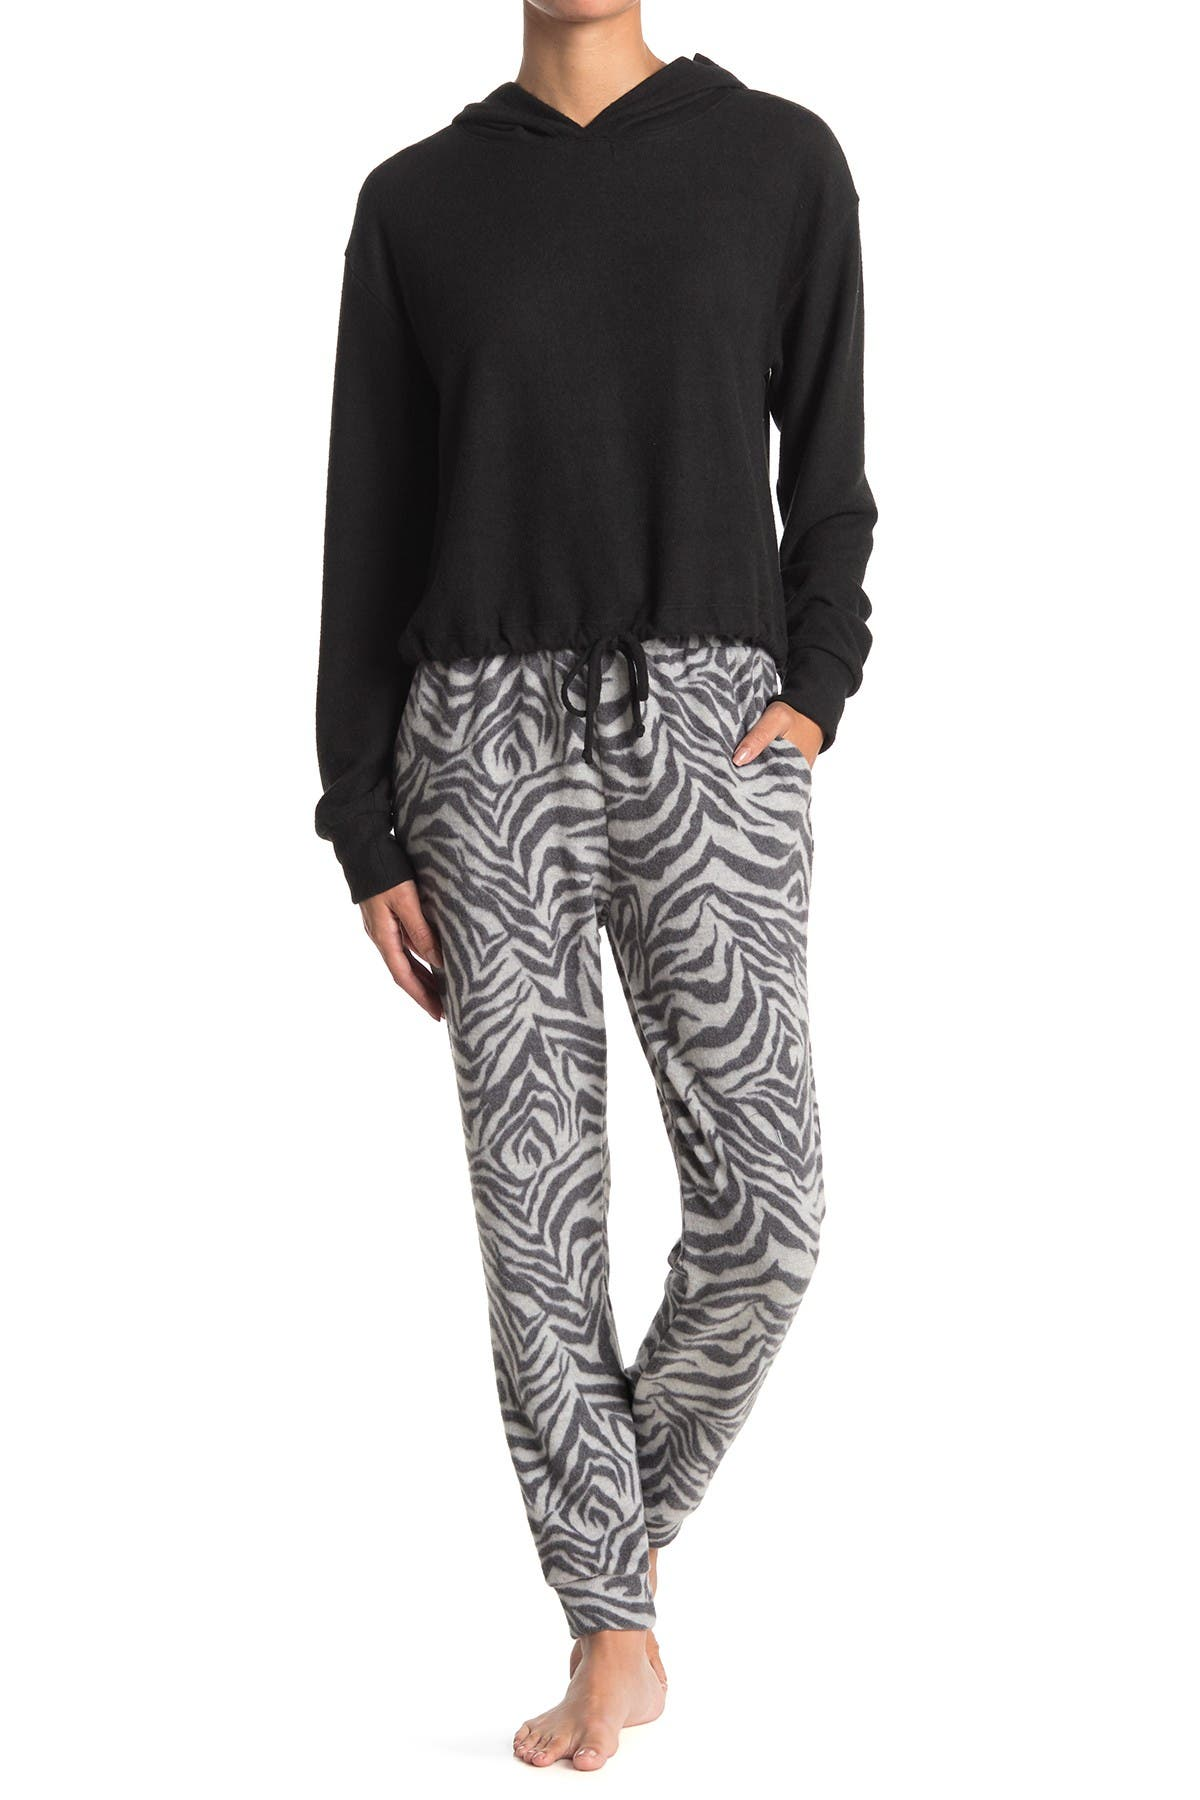 Image of Socialite Brushed Knit Lounge Joggers